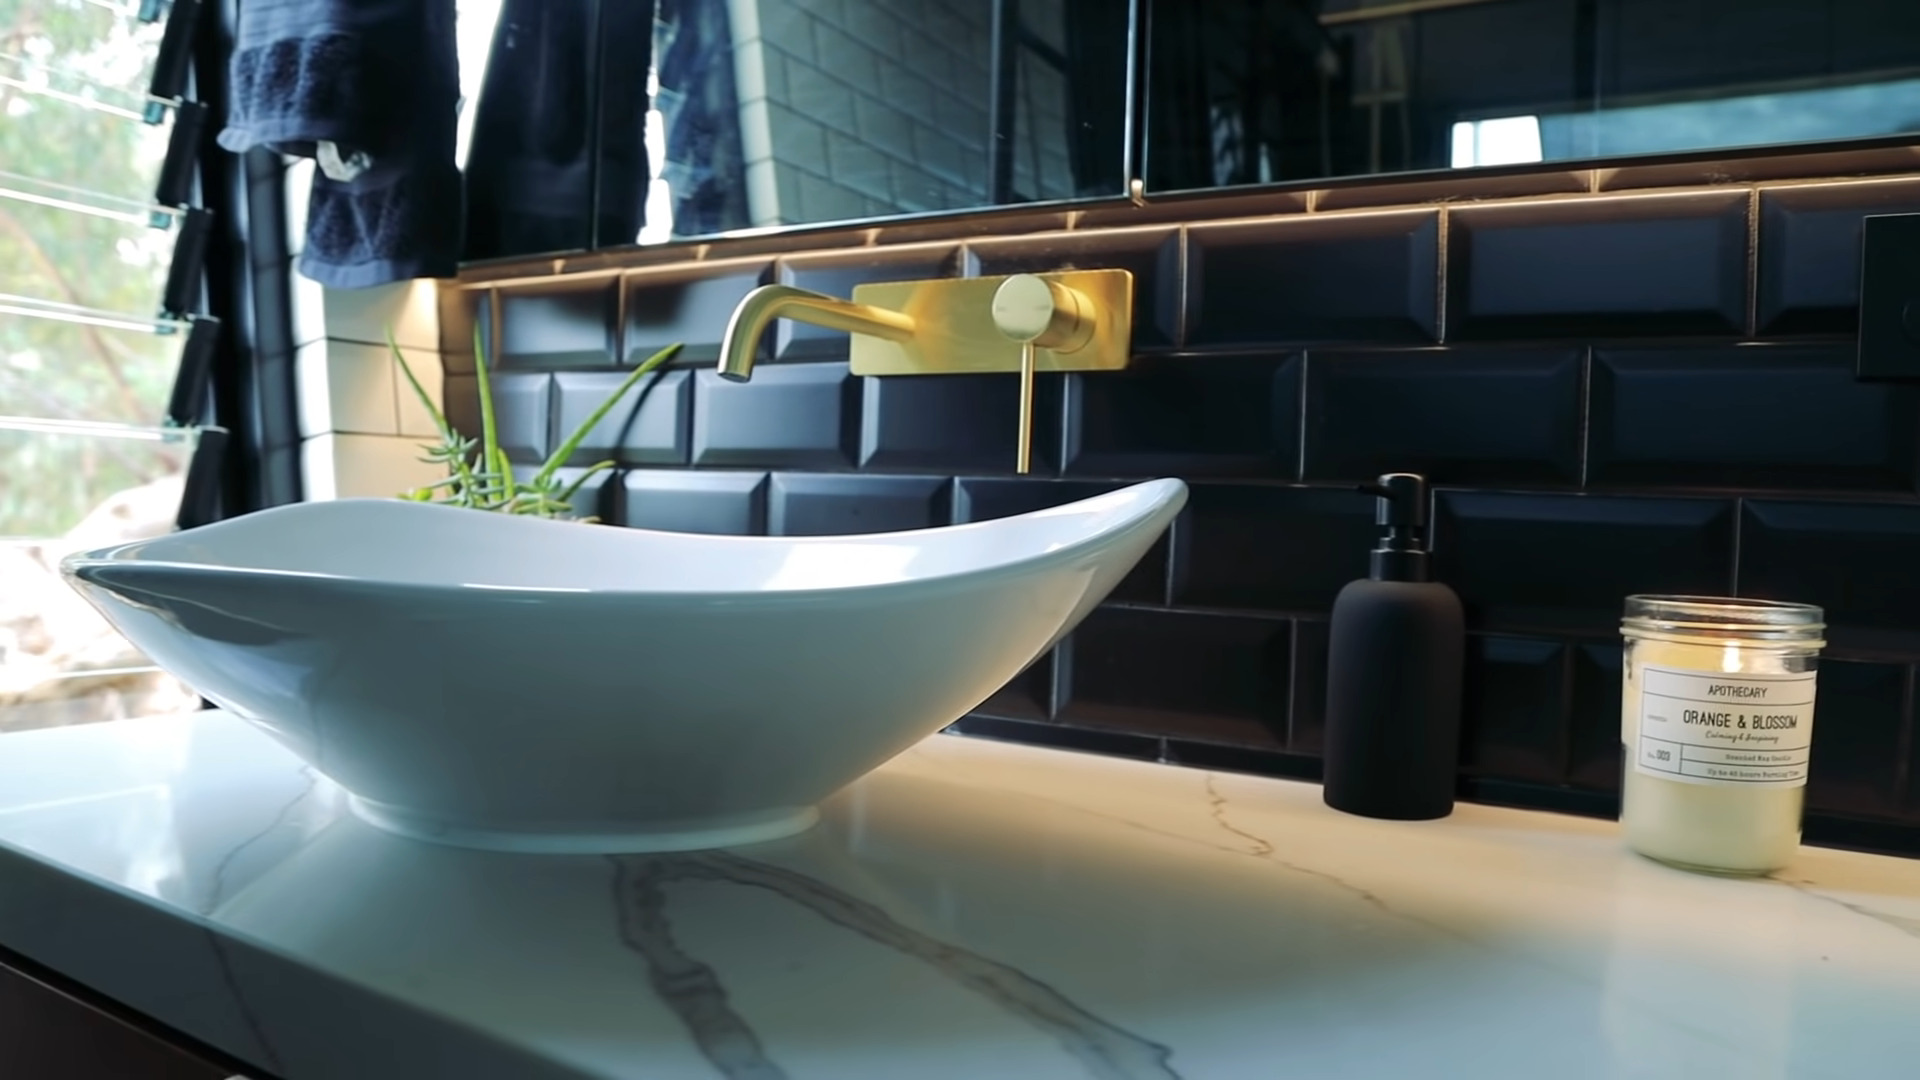 closeup view of the bowl sink, marble countertops and dark subway tile backsplash with gold fixtures